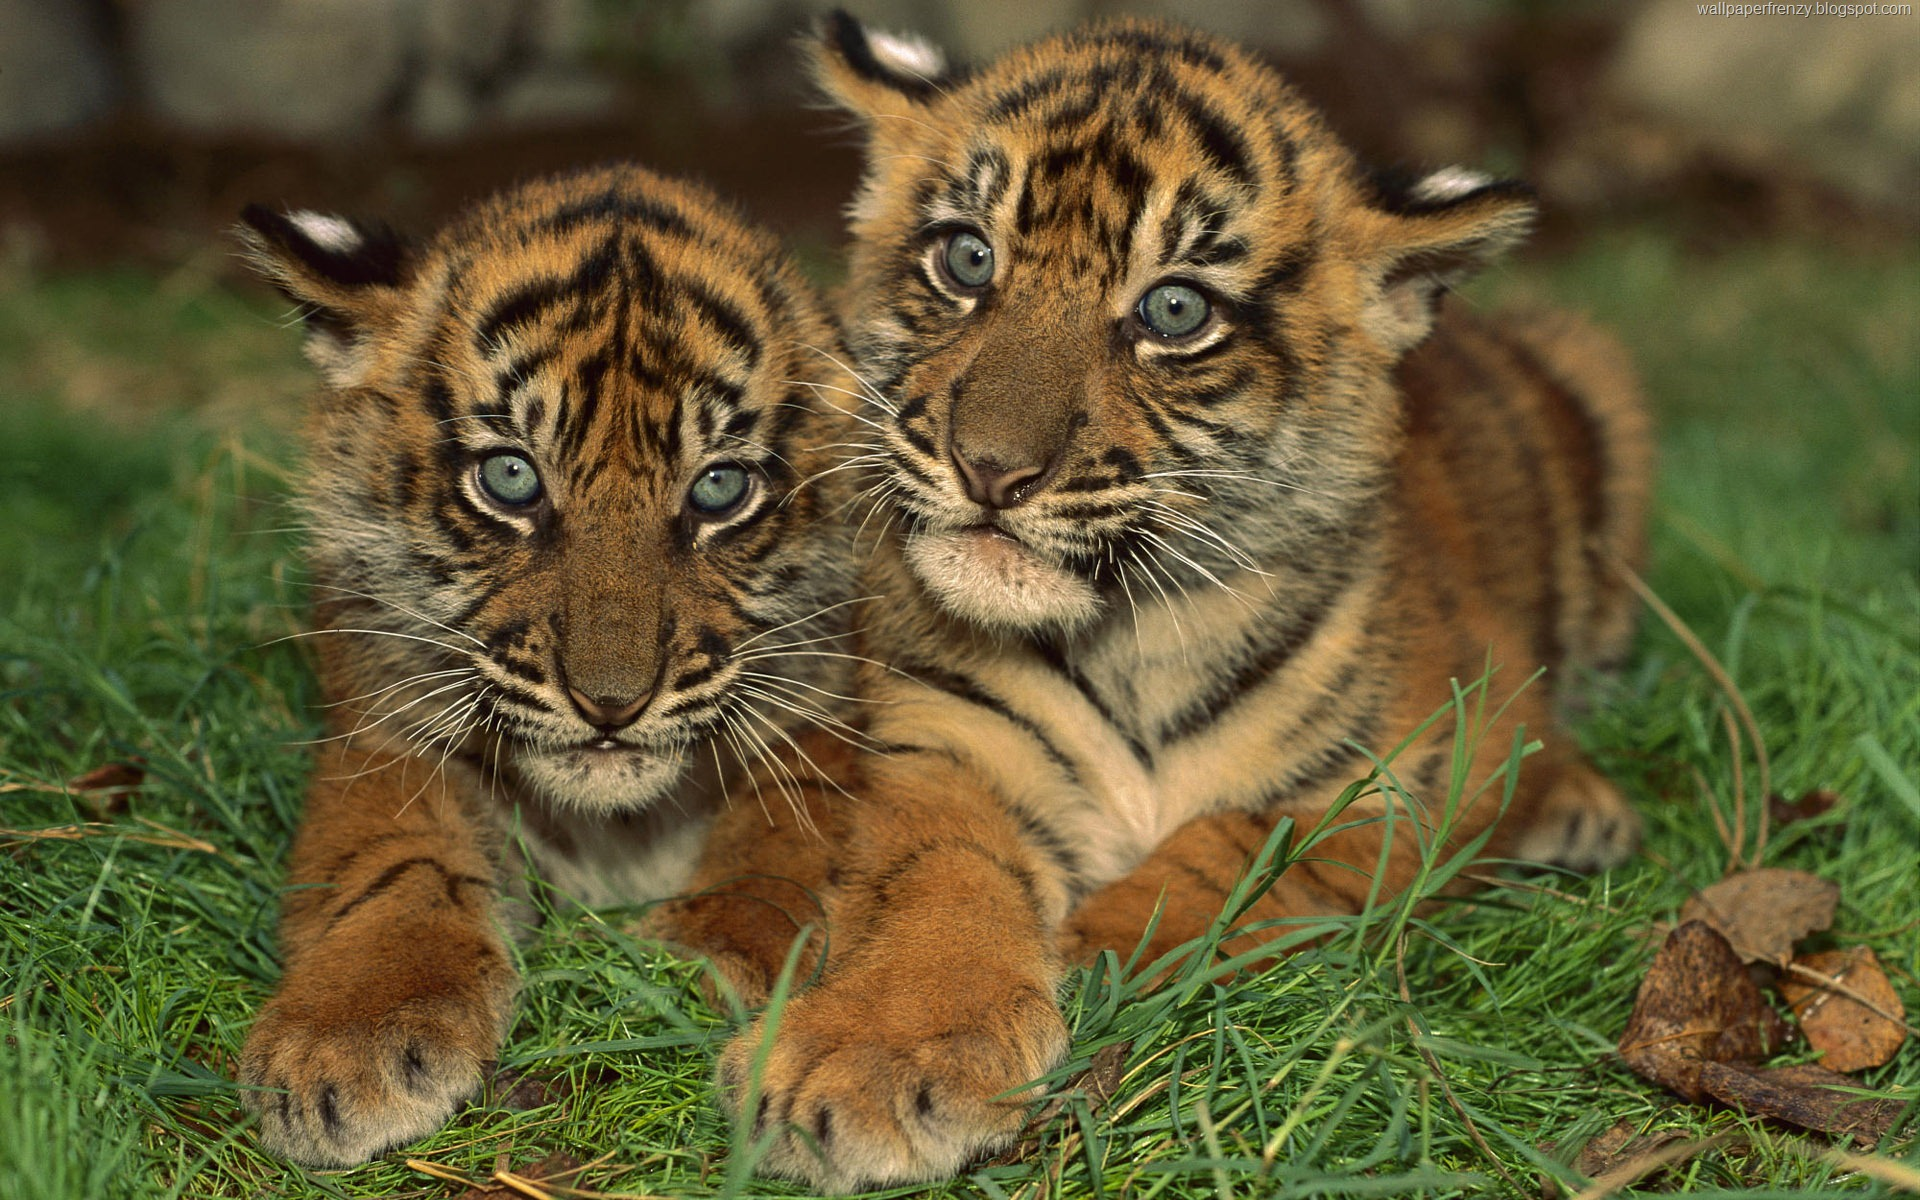 ... wild animals are and how well they play their role by being part of the eco-system. Choose from a range of high definition wildlife wallpapers from ...